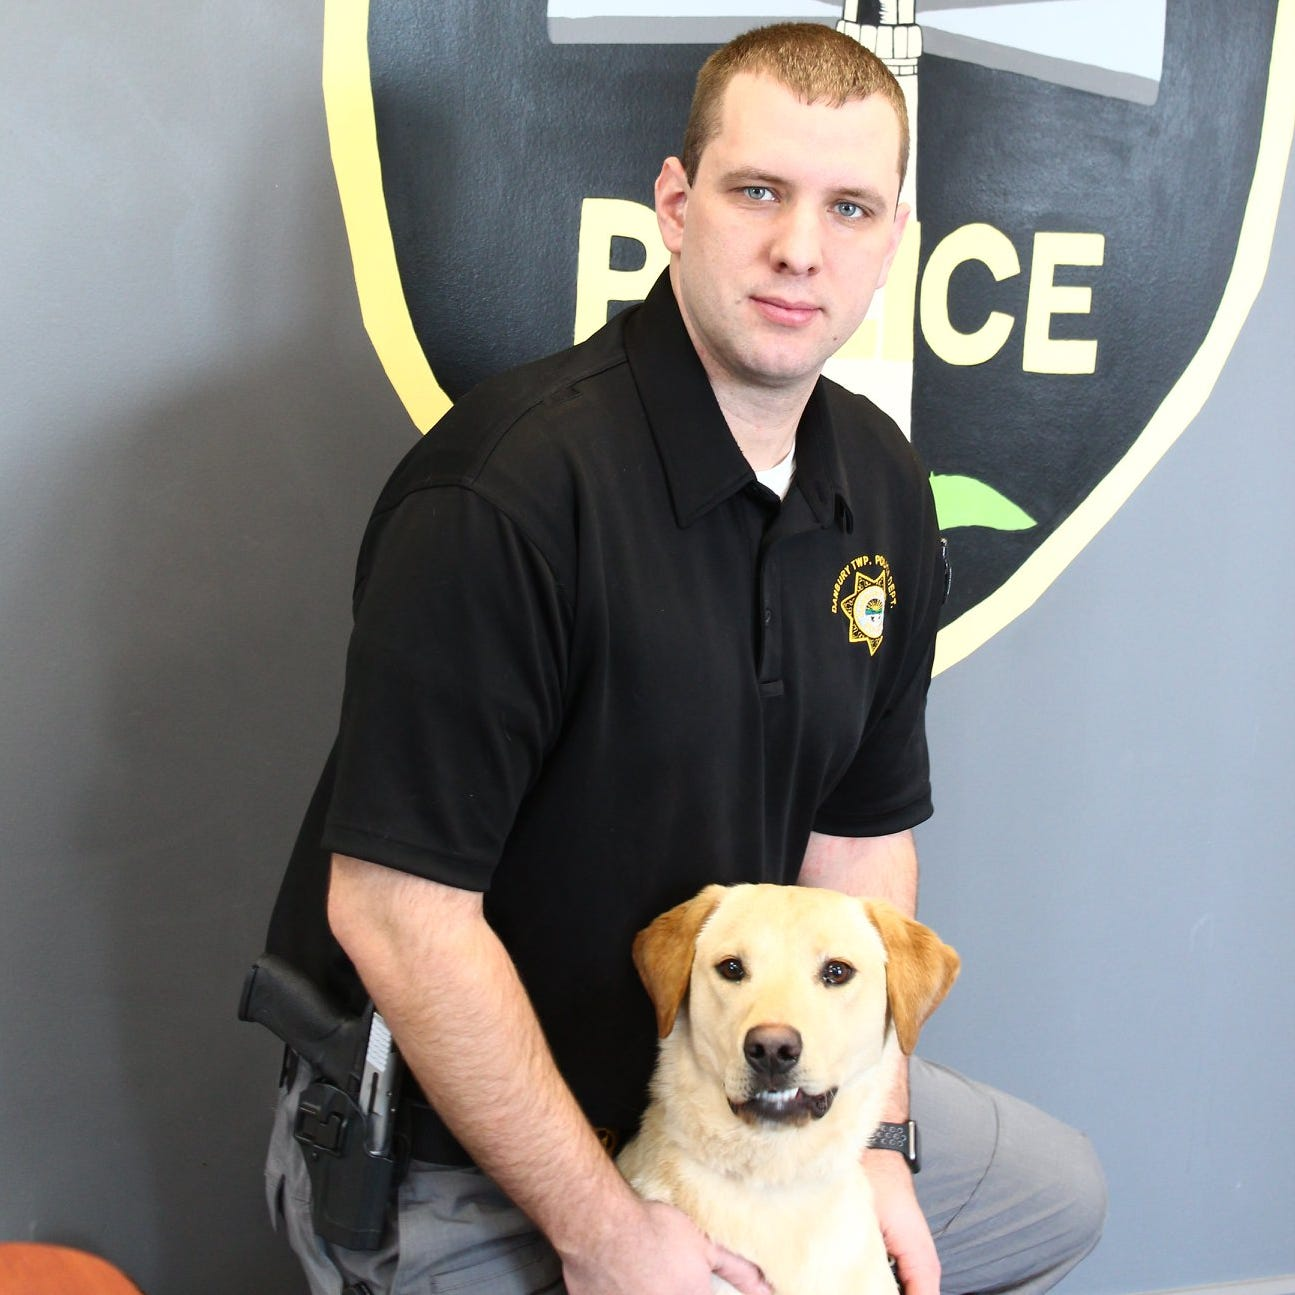 Danbury Twp. Police welcome new K-9 officer Kalahan